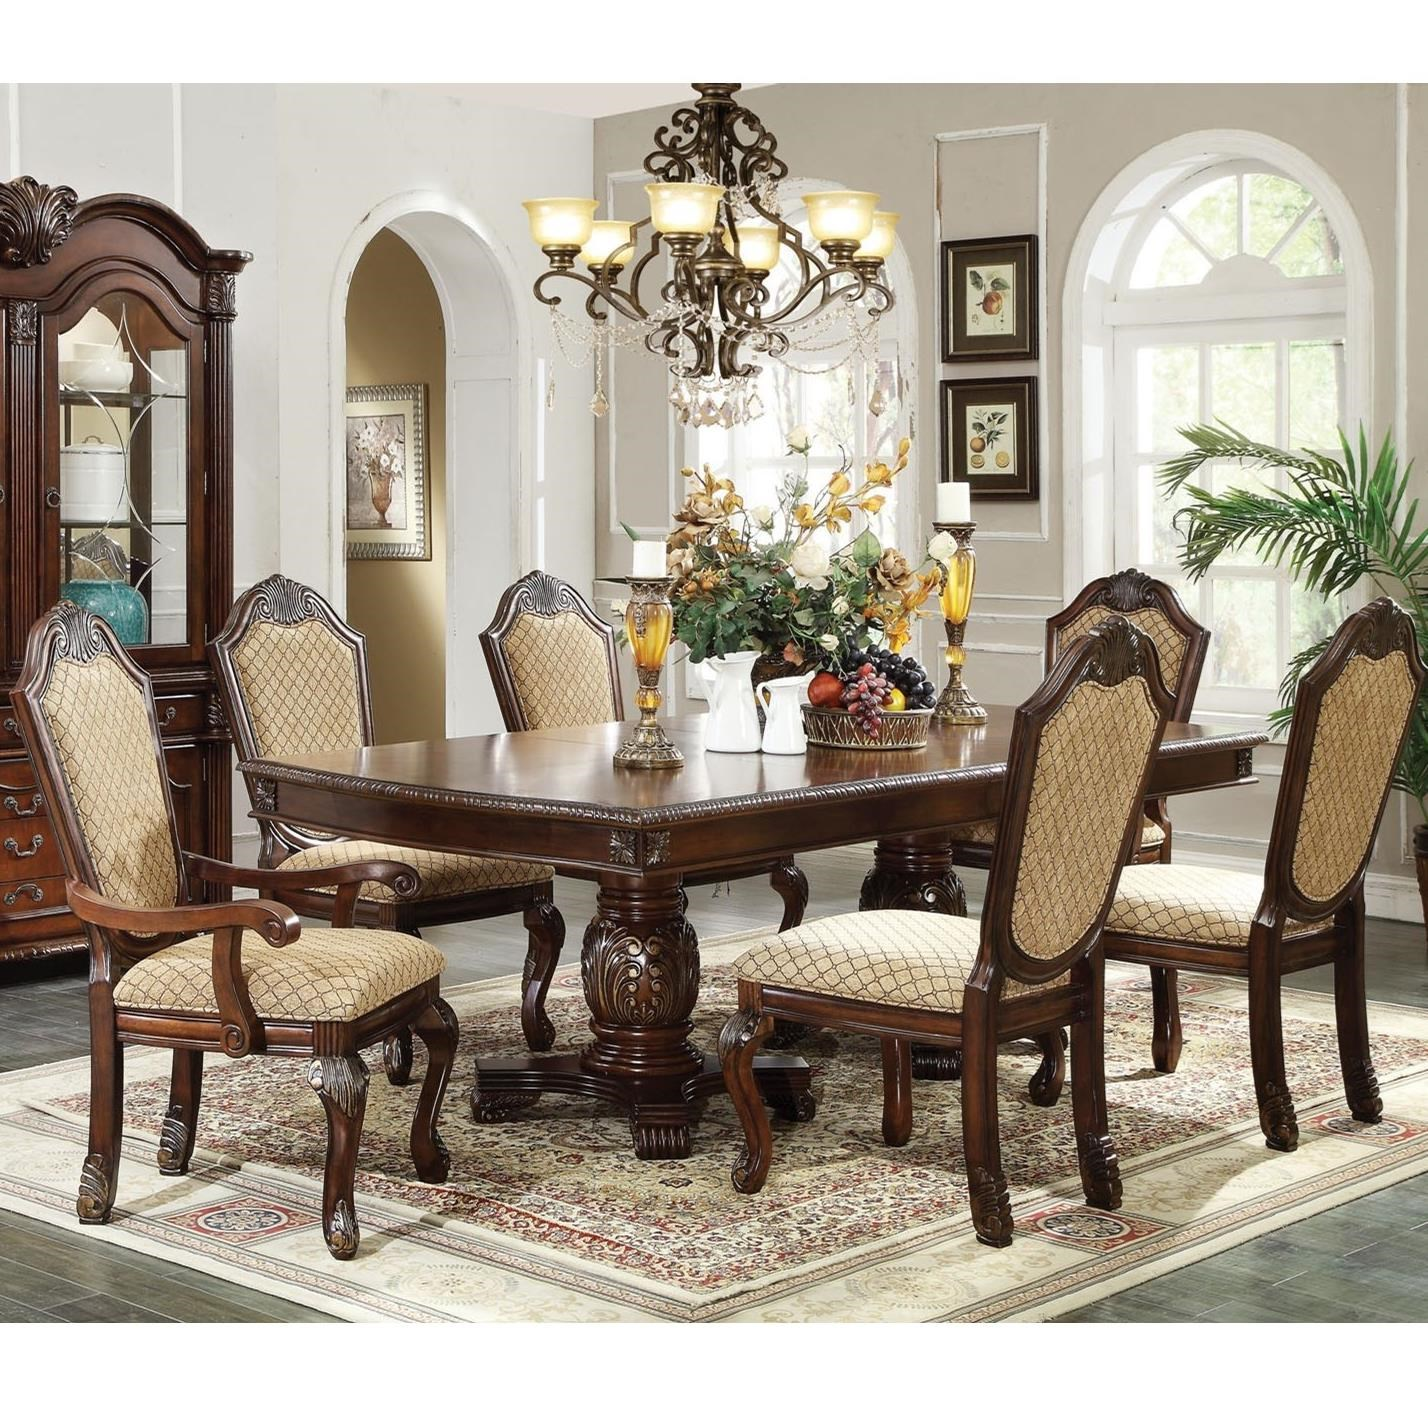 Chateau De Ville 7 Piece Formal Dining Set by Acme Furniture at Carolina Direct